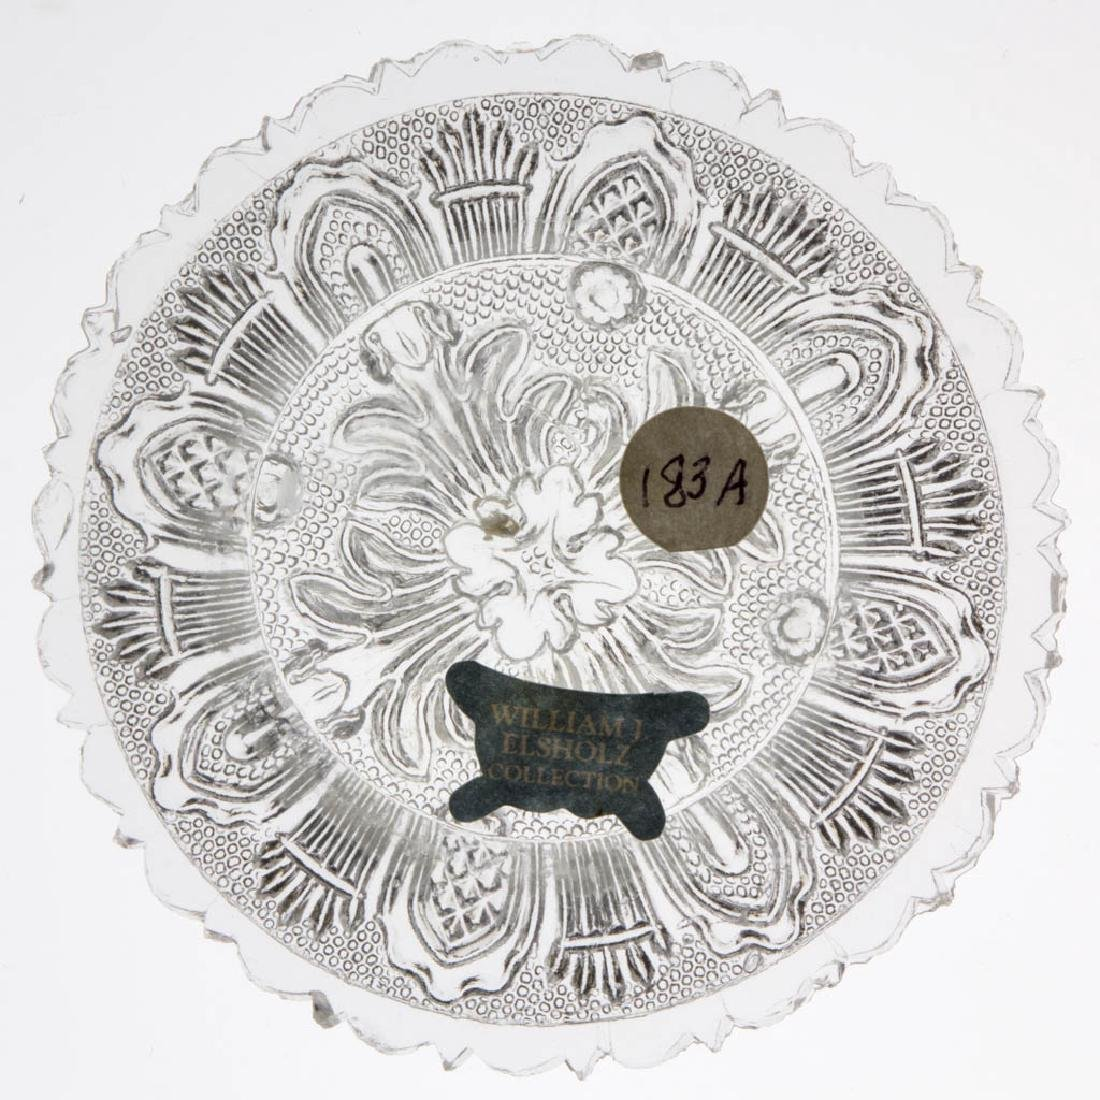 LEE/ROSE NO. 183-A CUP PLATE